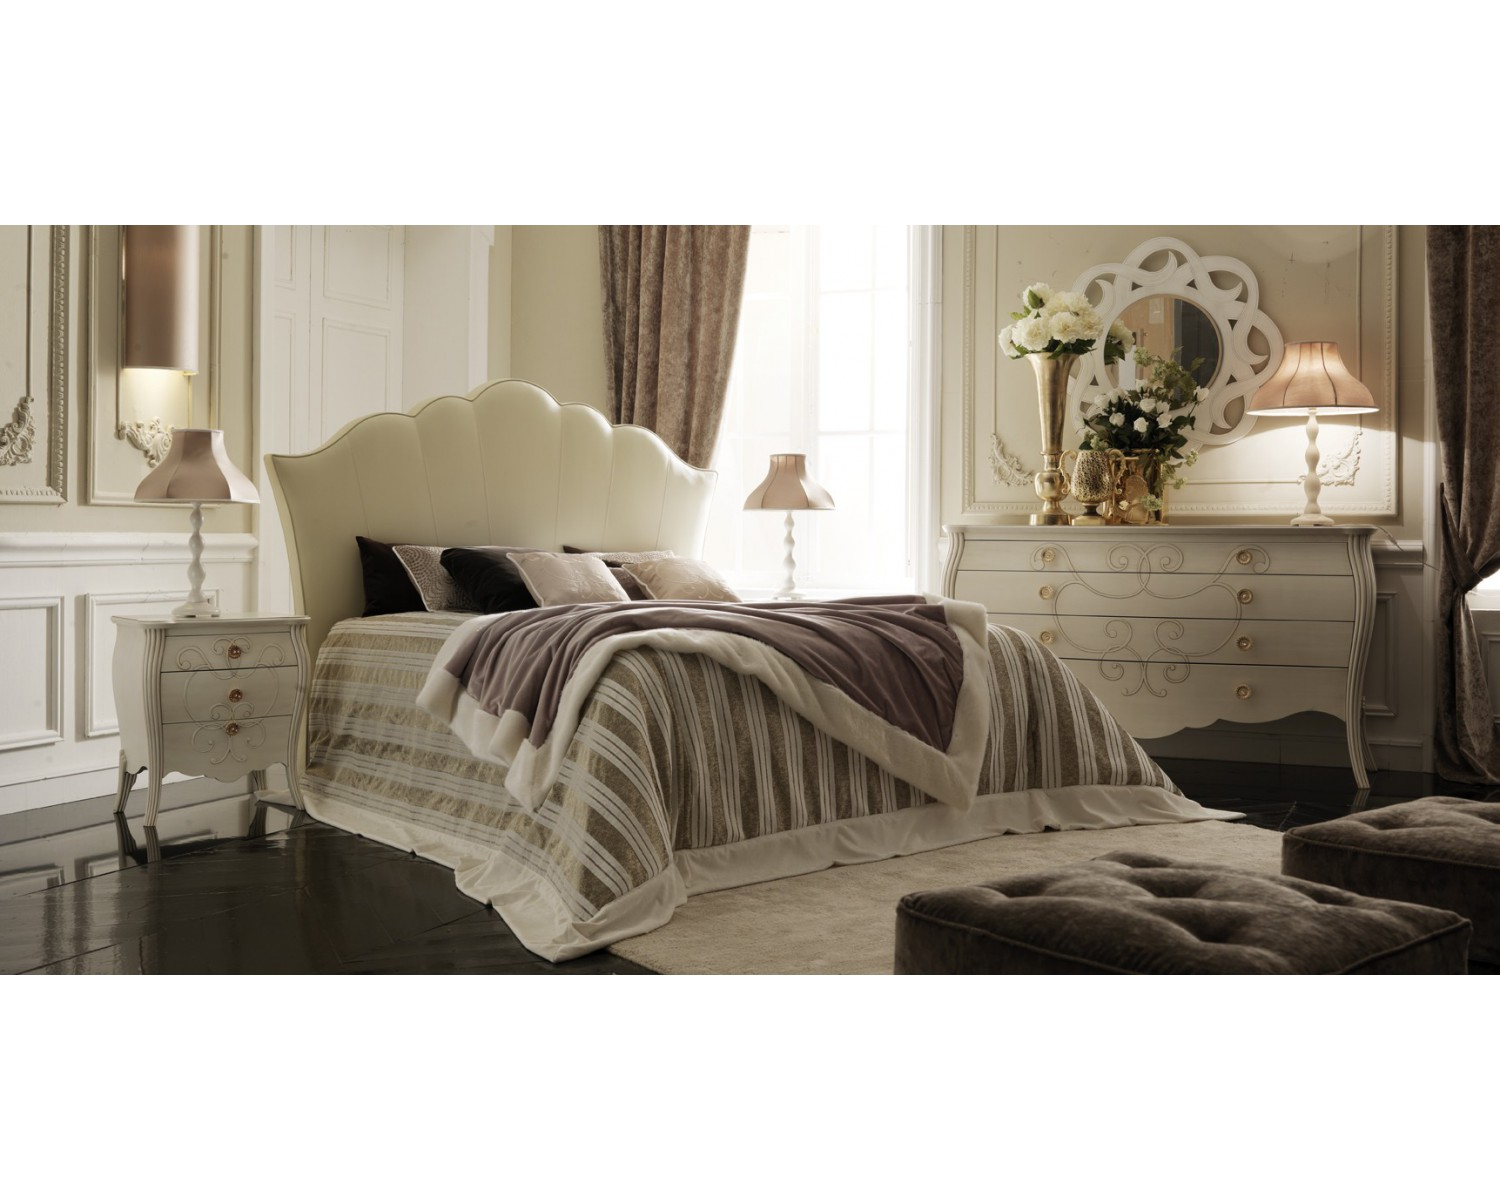 Mobili Letto Como.Bedroom As Photo Wood Rounded White Bed Como Comodini